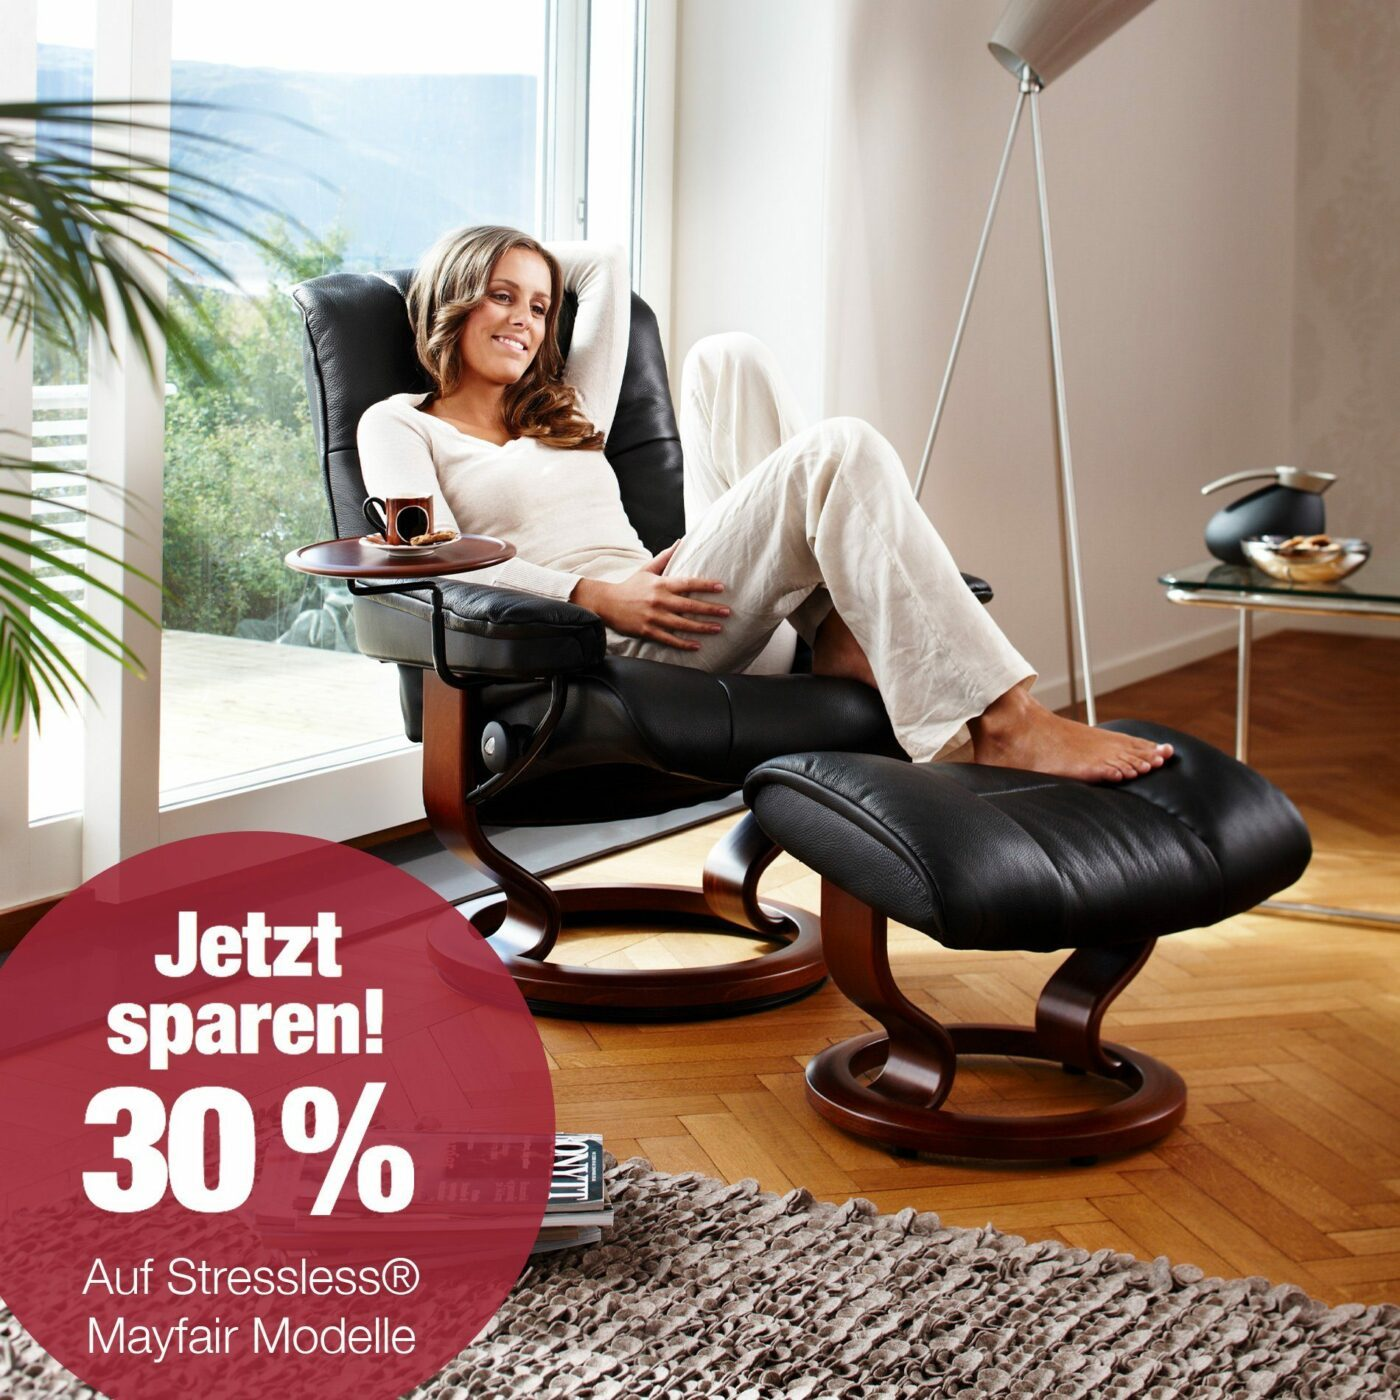 30 % Rabatt auf Stressless® Mayfair